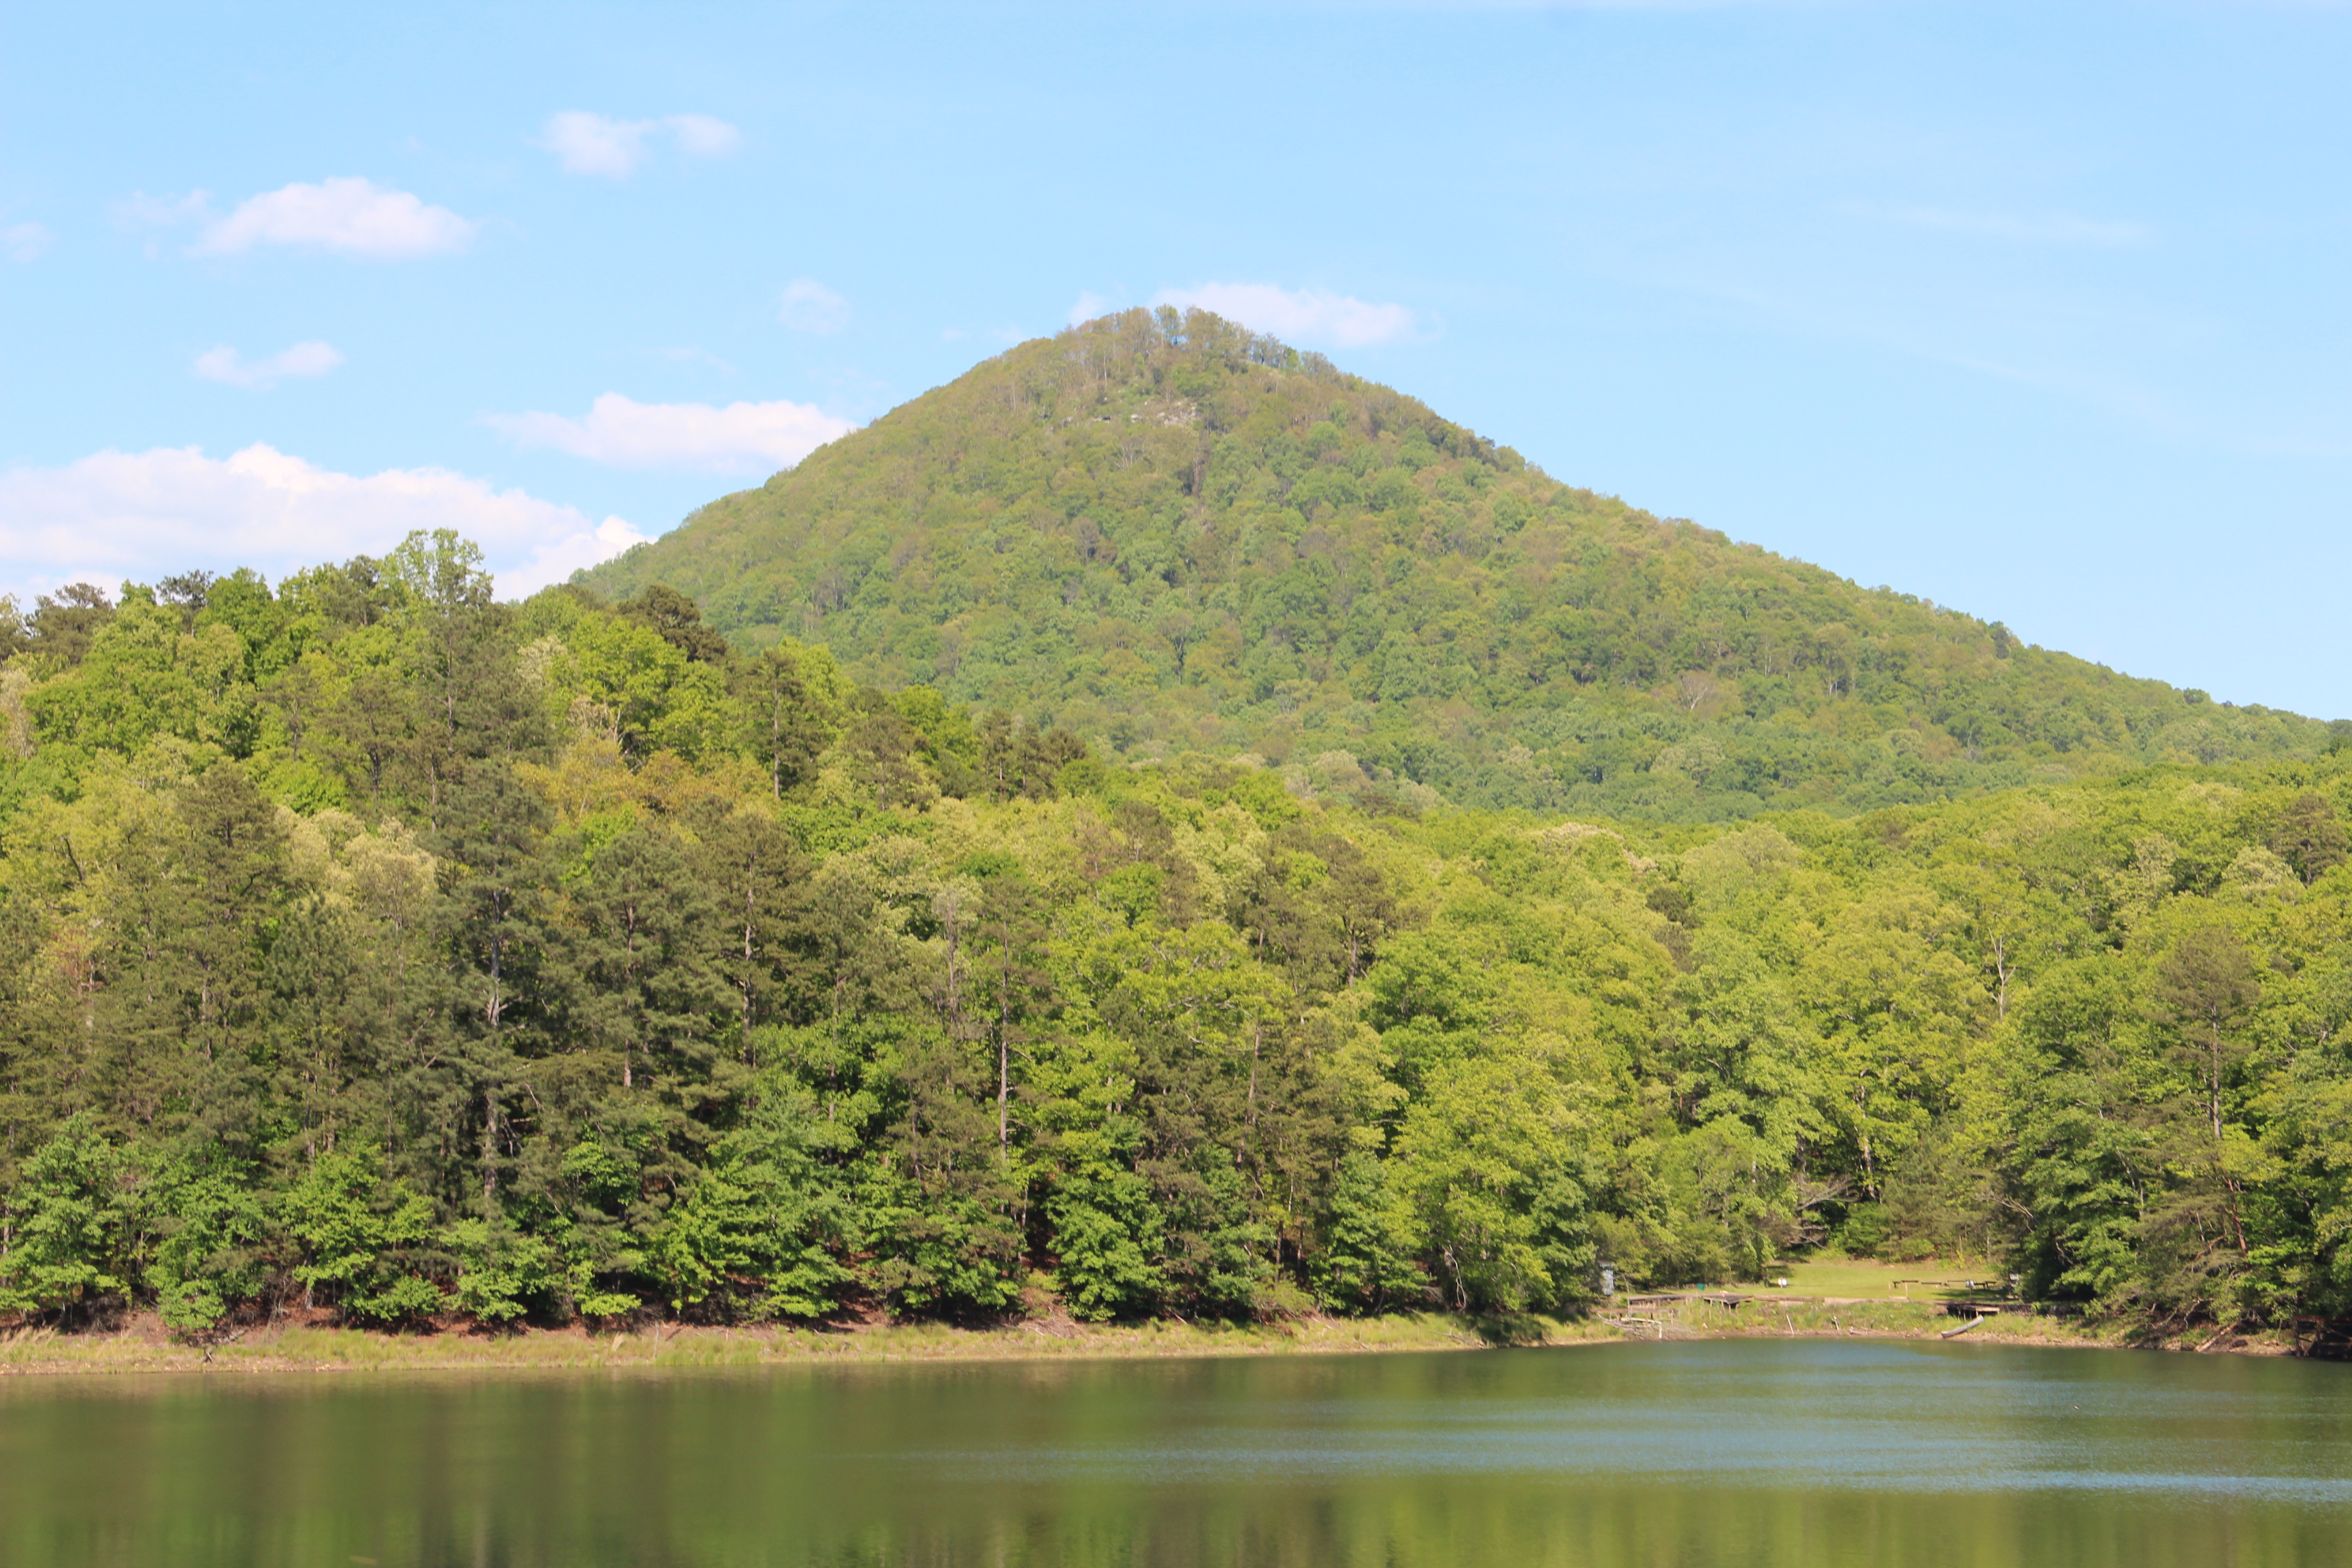 pickens county Locate pickens county, sc apartment rentals on realtorcom® find pickens county apartments for rent listings, lovely photos and more today.